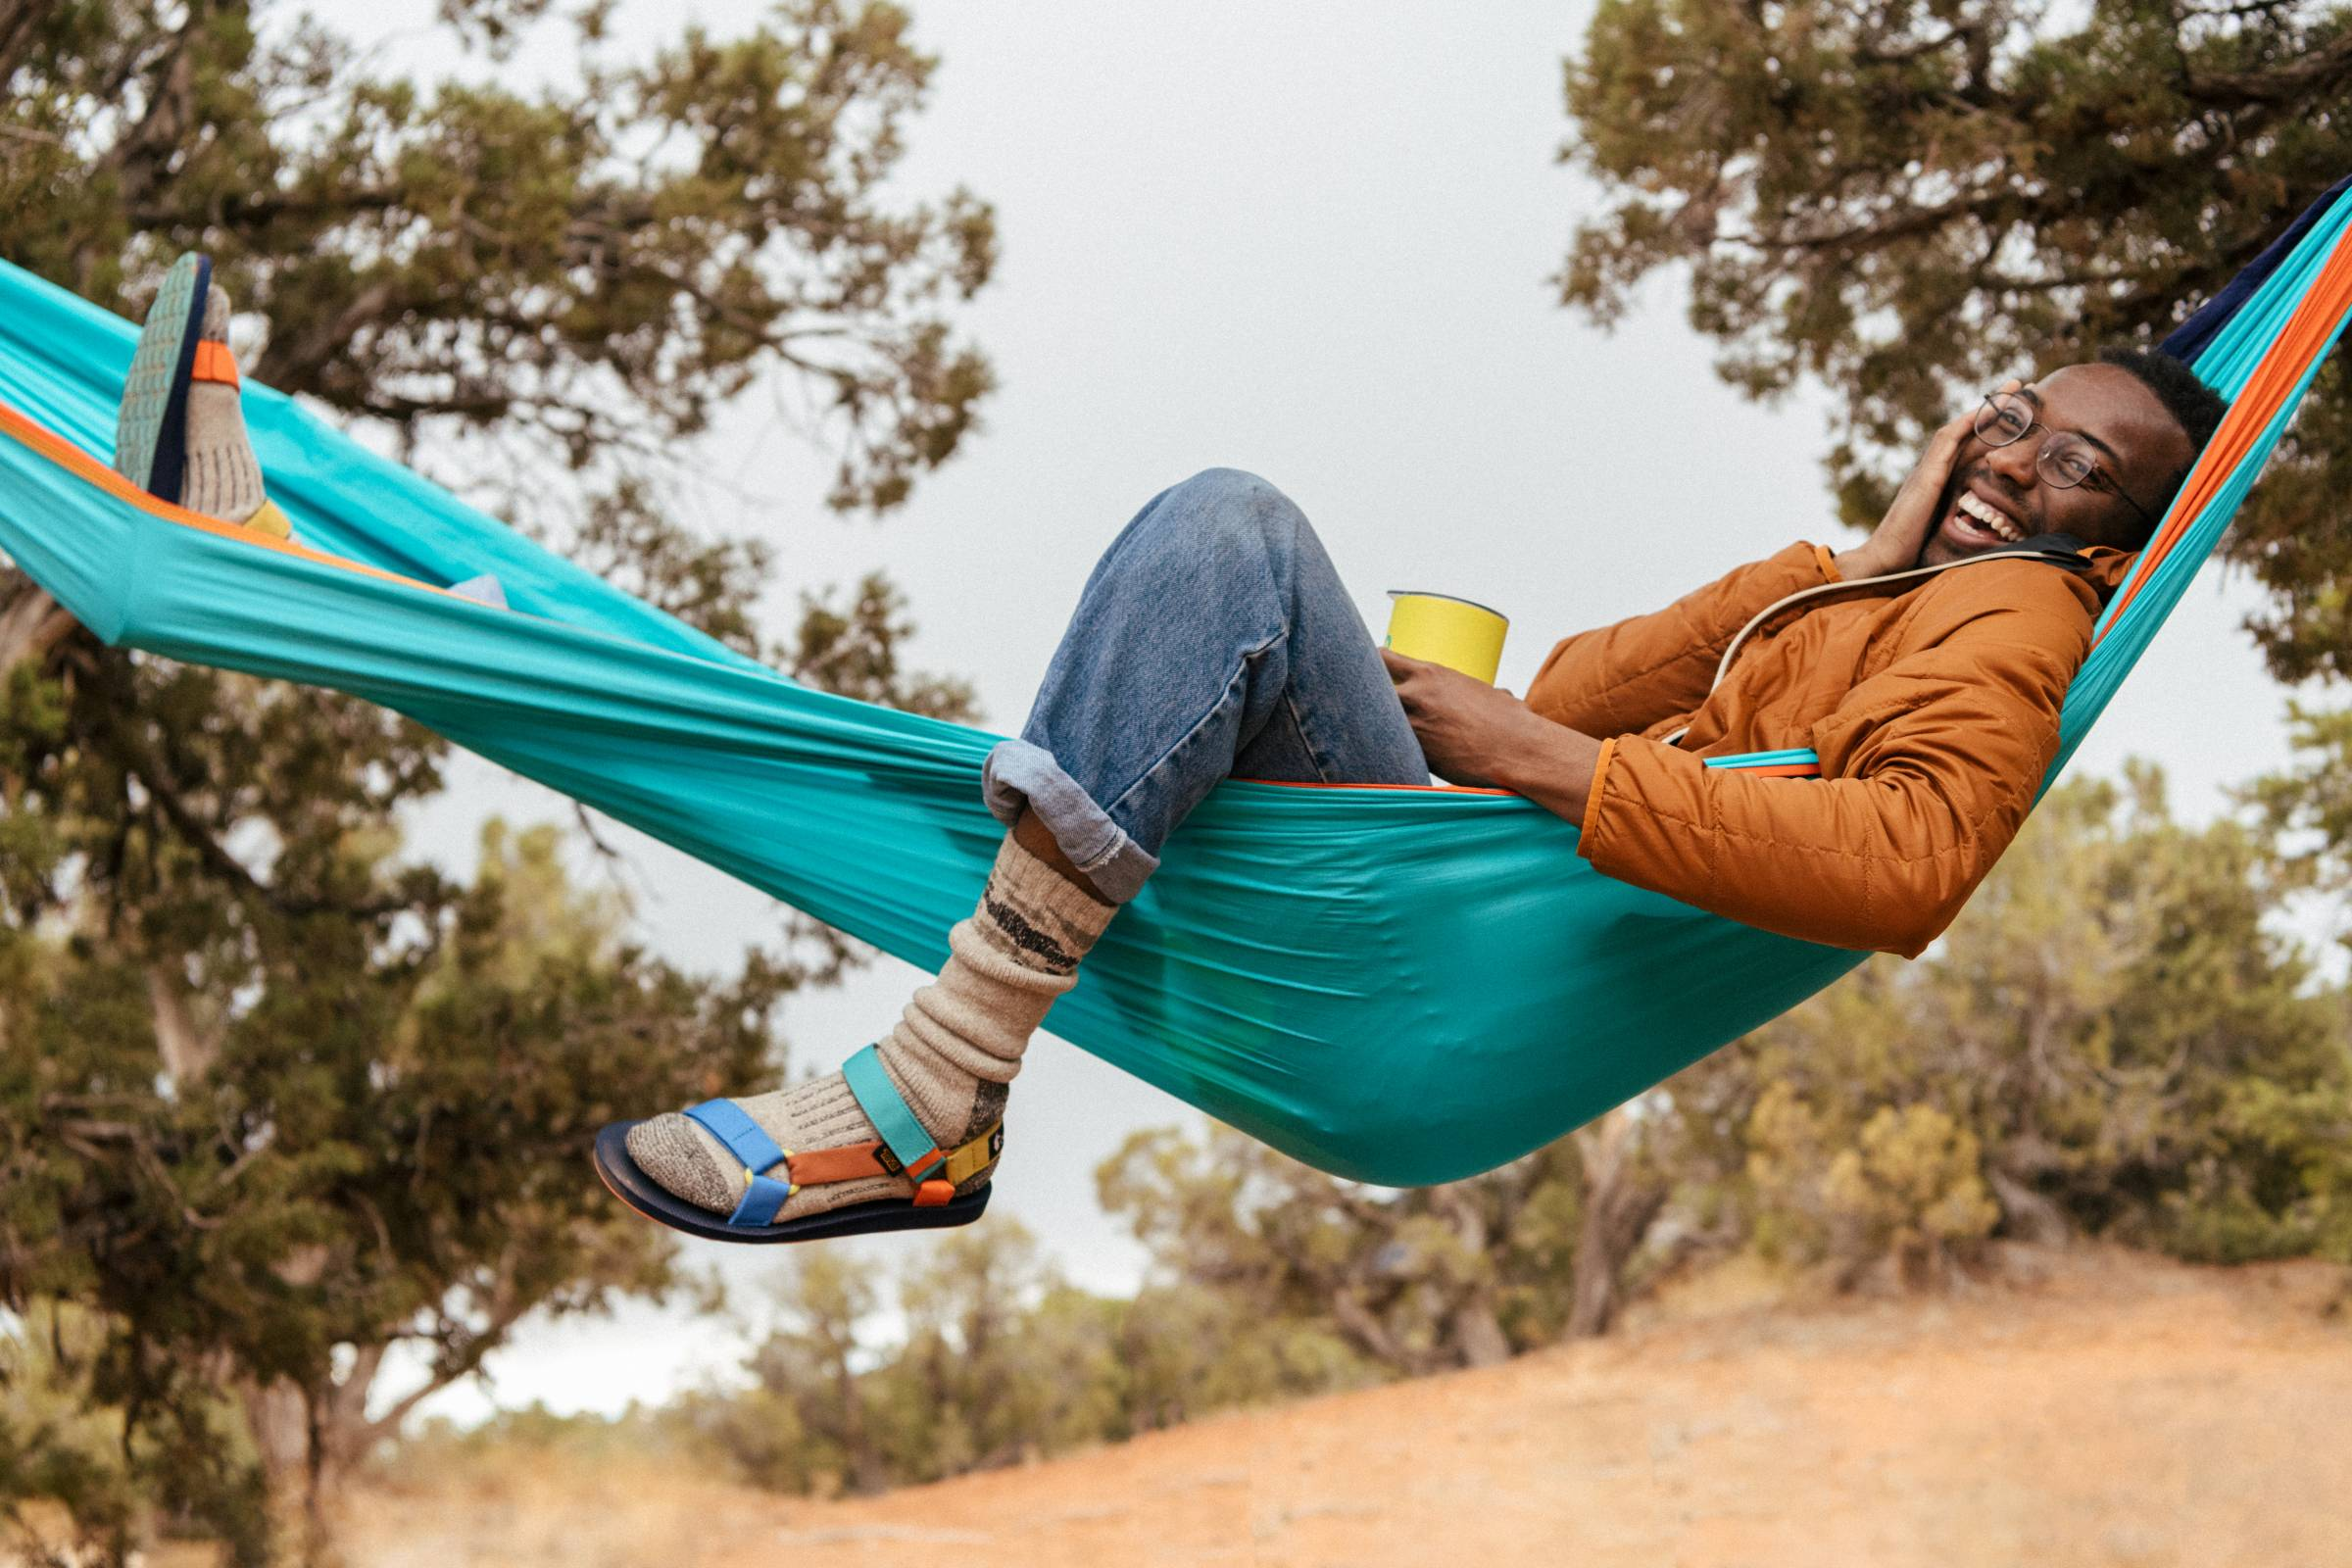 Black man lounging in ENO hammock in Cotopaxi and Teva sandals and gear